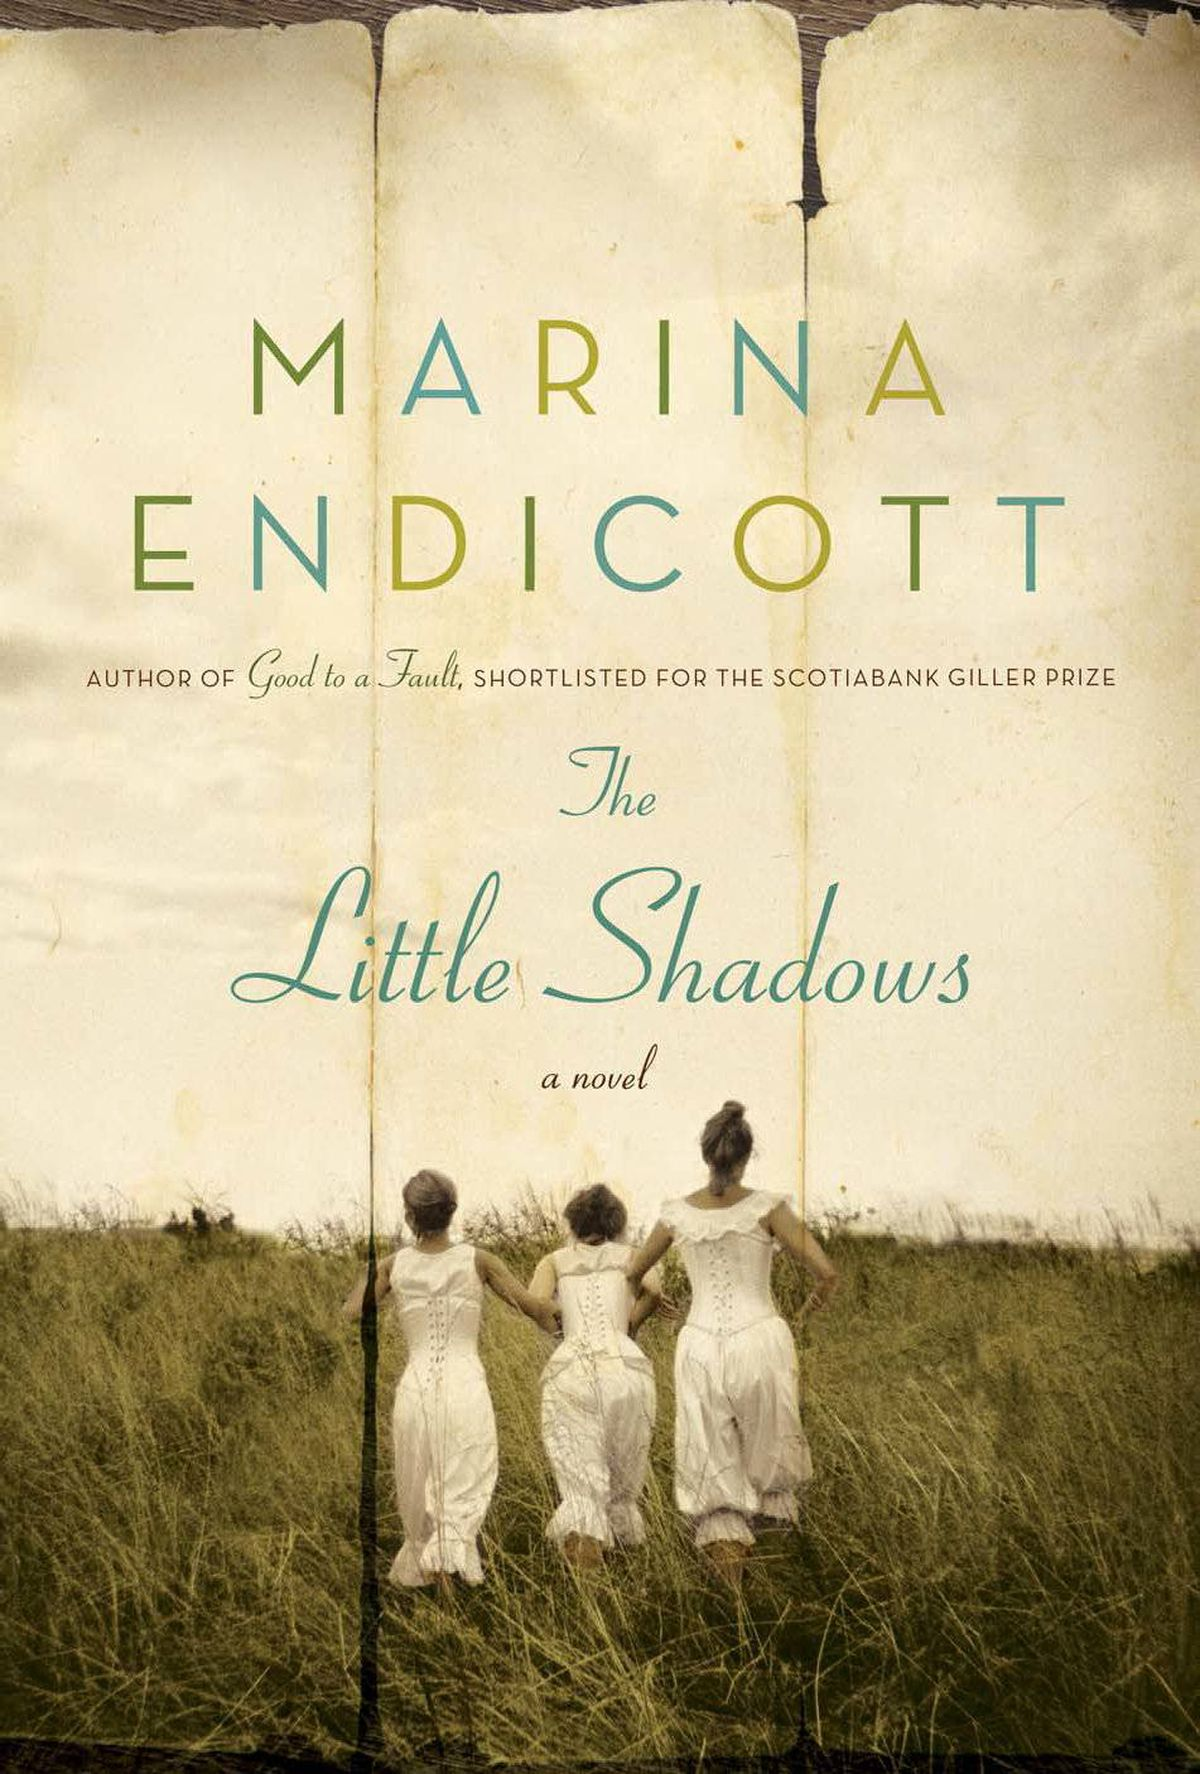 THE LITTLE SHADOWS By Marina Endicott (Doubleday Canada) Featuring three fatherless sisters and their widowed mother, The Little Shadows is set on vaudeville stages all over the U.S. and Canadian West around the First World War. The novel features Endicott's trademark wry sensibility and pithy lyricism, and her skill at pulling the rug out from under the reader's feet. – Katherine Ashenburg